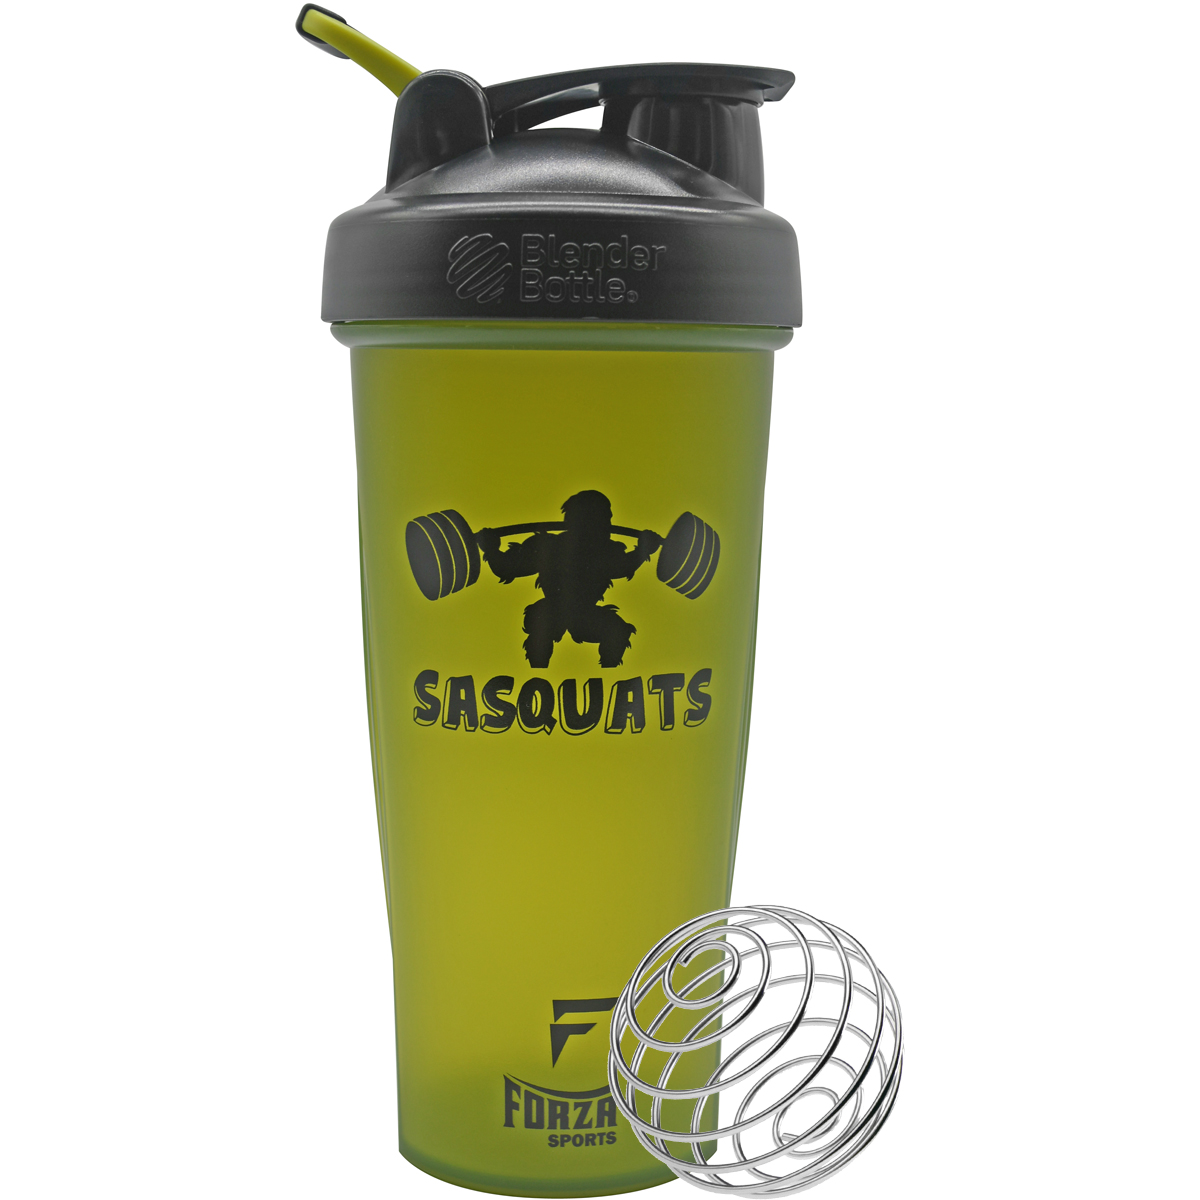 Blender-Bottle-x-Forza-Sports-Classic-28-oz-Shaker-Mixer-Cup-with-Loop-Top thumbnail 33